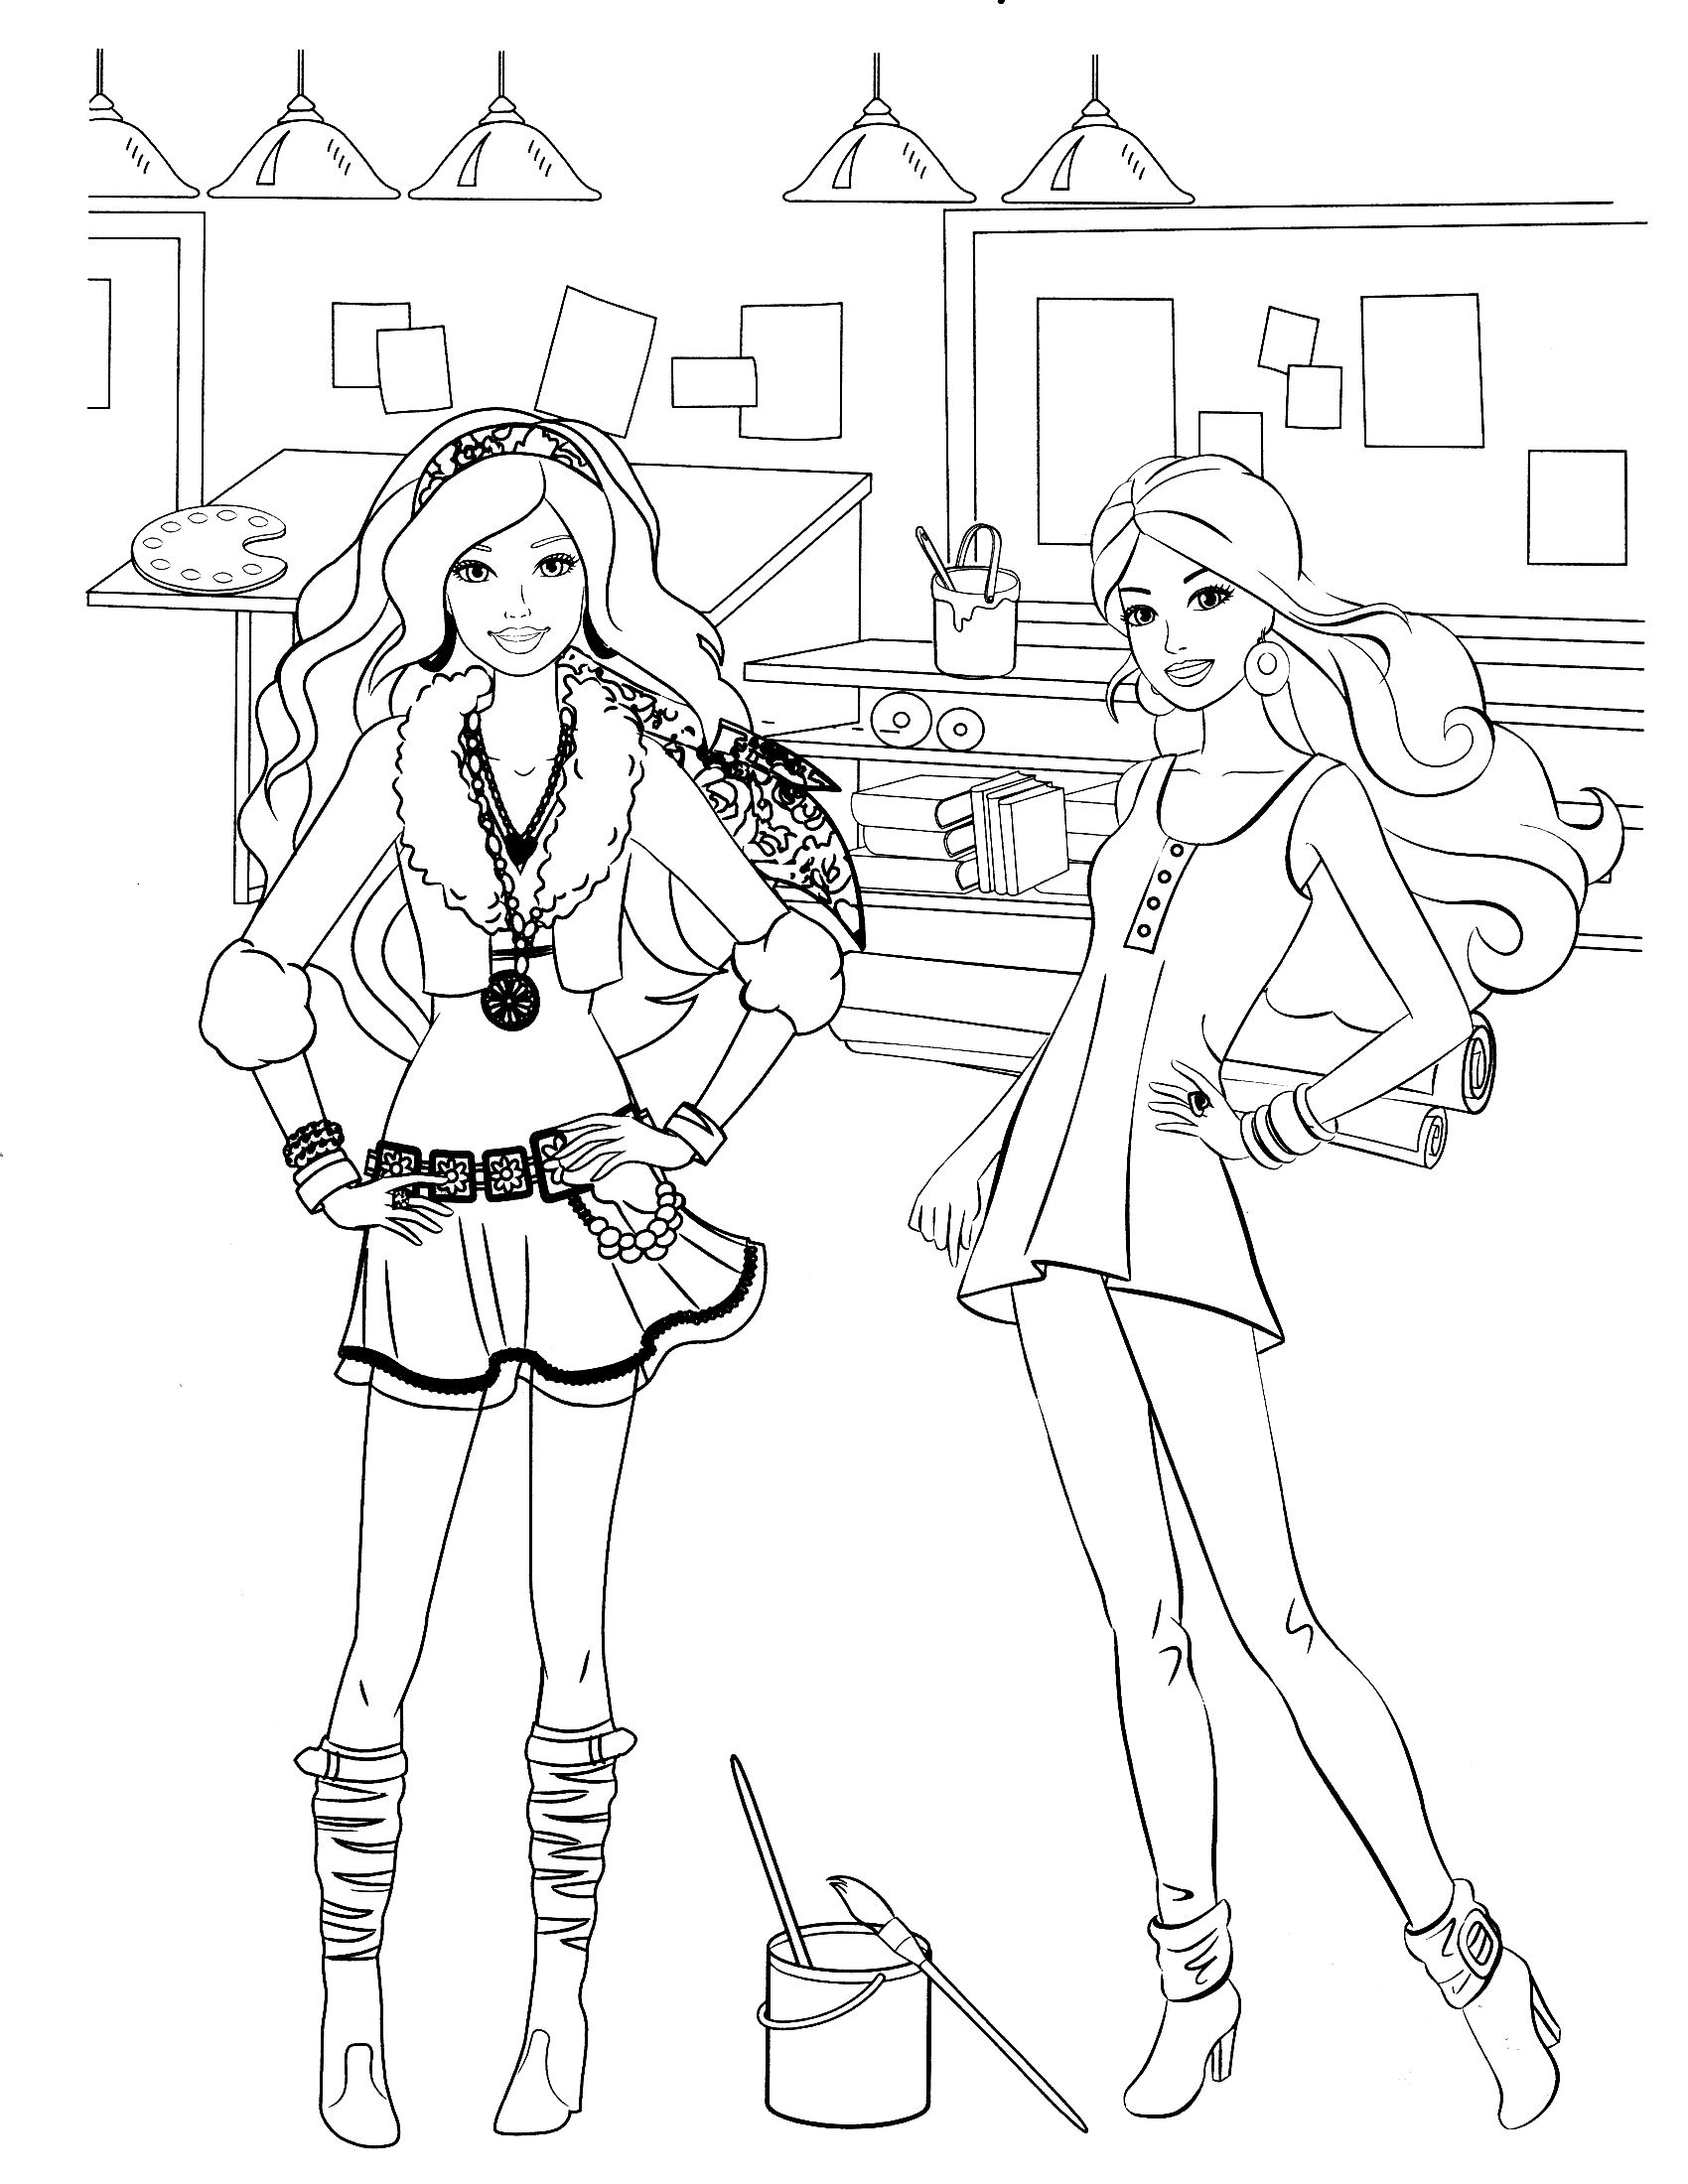 Barbie Coloring Pages Apk : Barbie coloring page color me happy pinterest